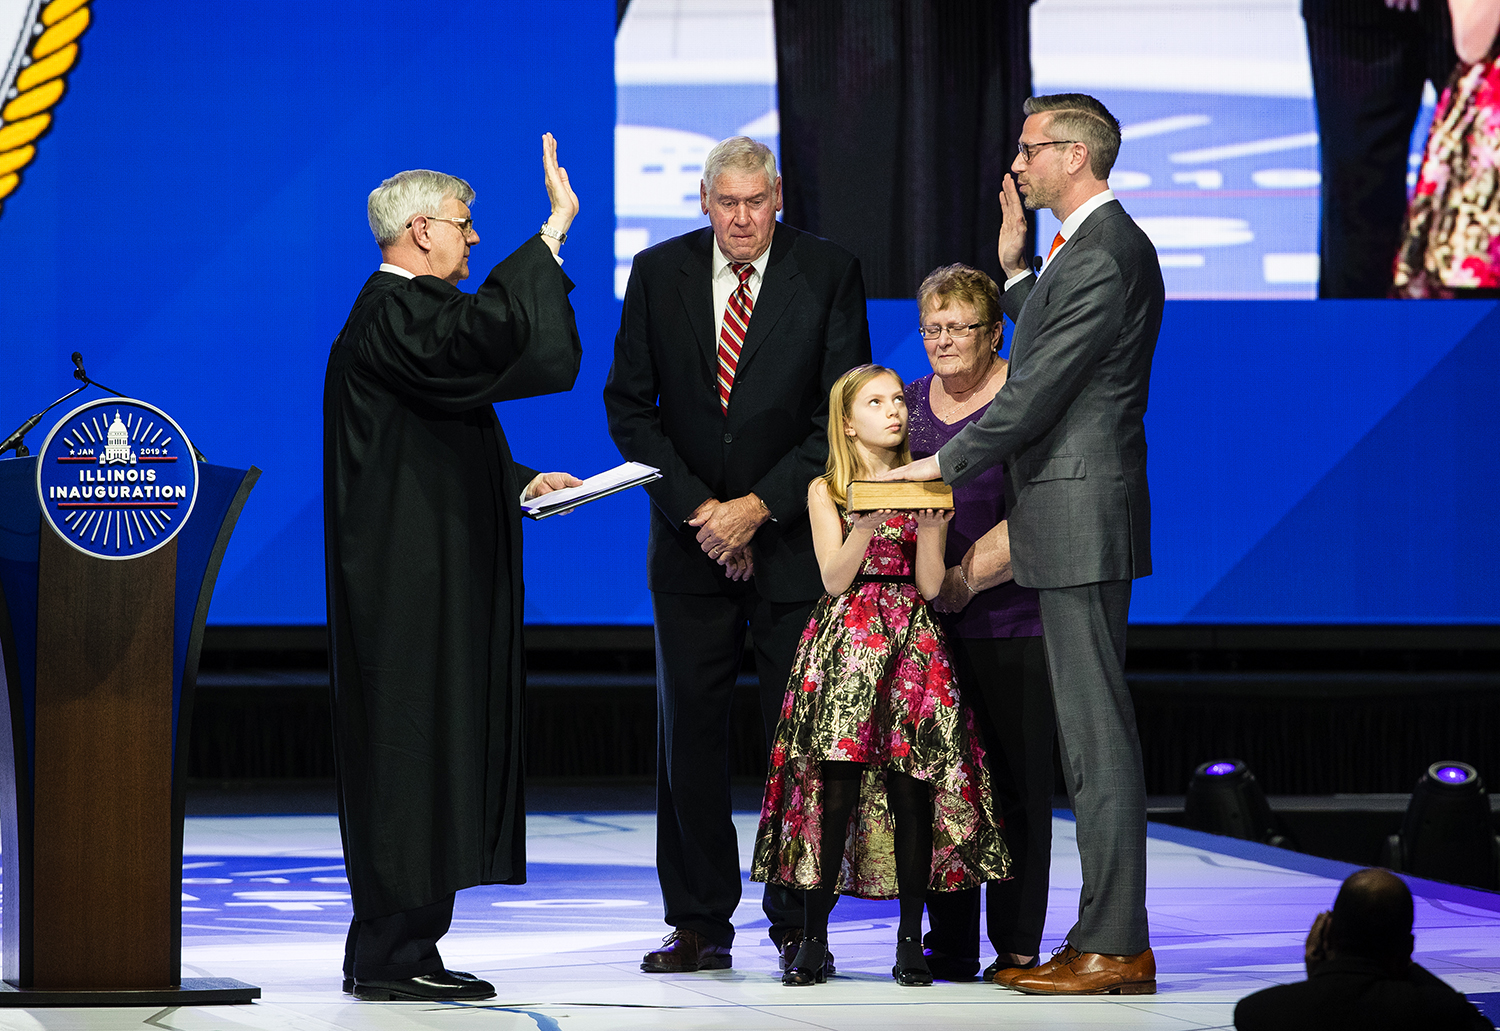 Ella Frerichs glances up at her dad, Illinois Treasurer-elect Mike Frerichs, as she holds up the Bible while he takes the oath of office from Judge Michael McCuskey during the Illinois Inaugural Ceremony at the Bank of Springfield Center Monday, Jan. 14, 2019. [Ted Schurter/The State Journal-Register]